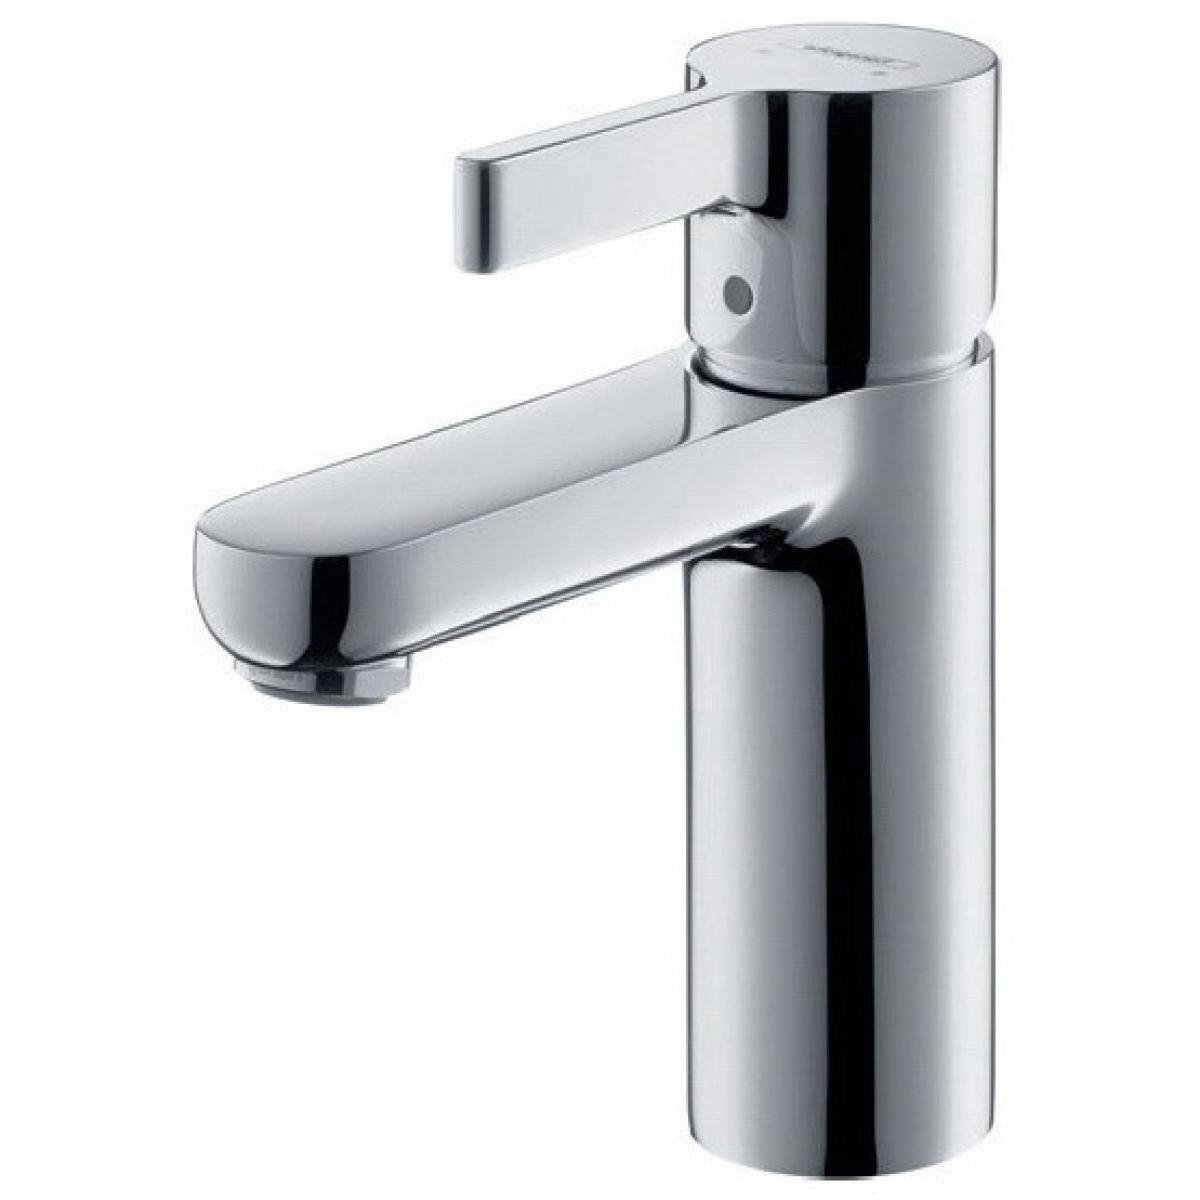 Hansgrohe Metris S 31060000 Bathroom Equipment - Hansgrohe Metris